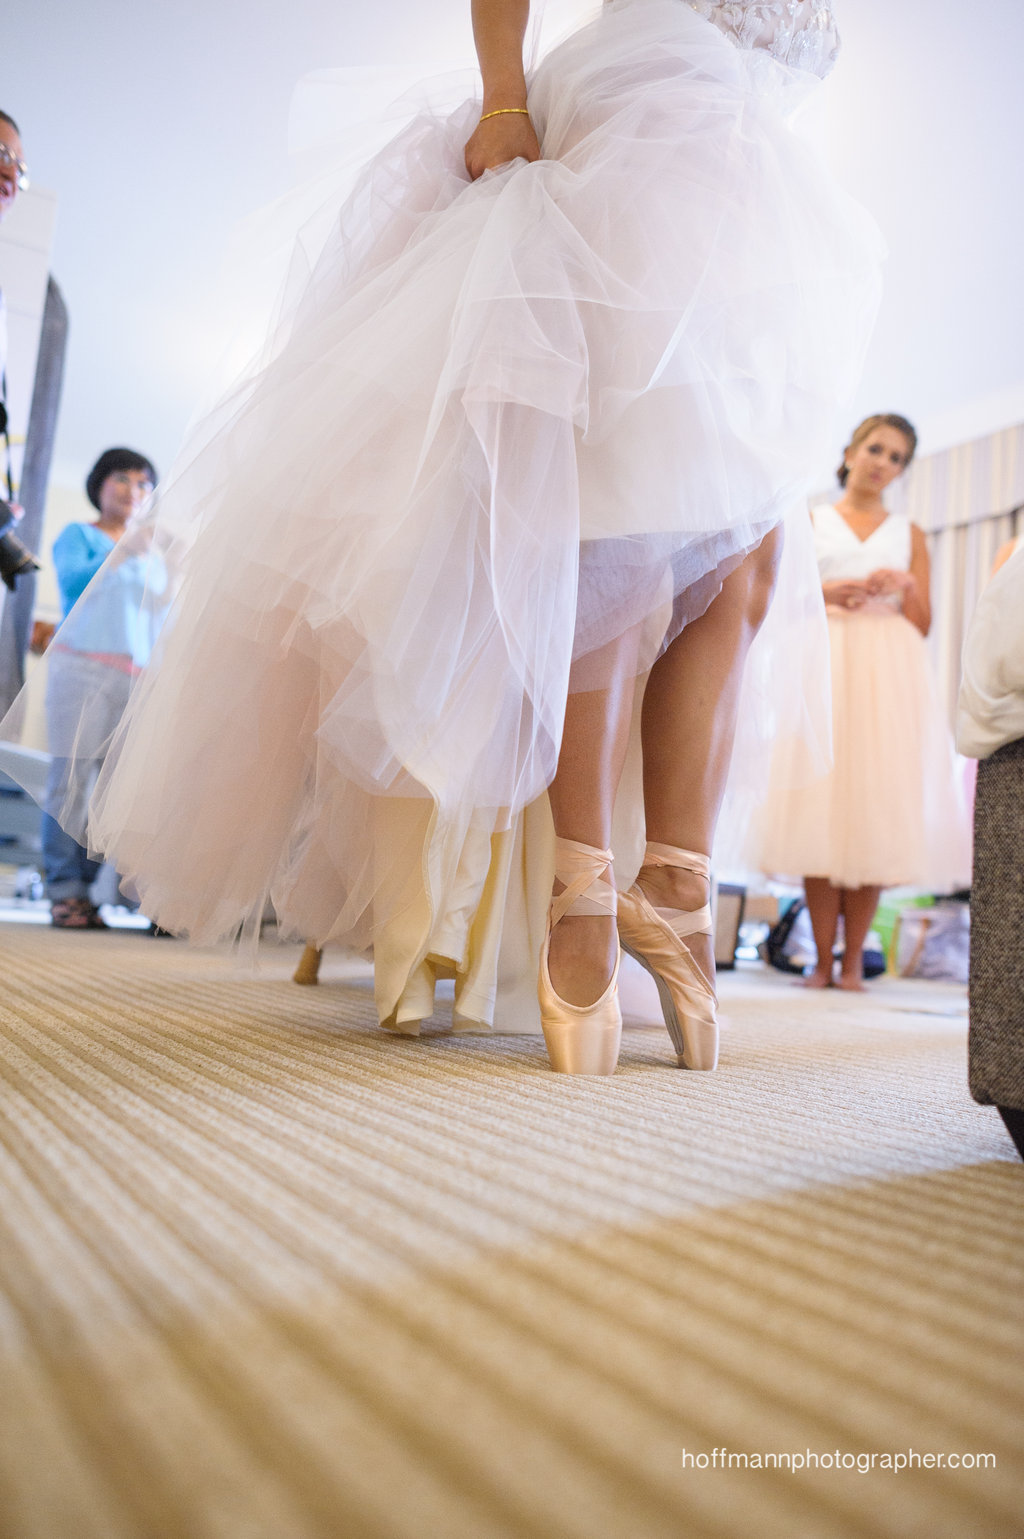 Ballet en Pointe | Captured by Hoffman Photography